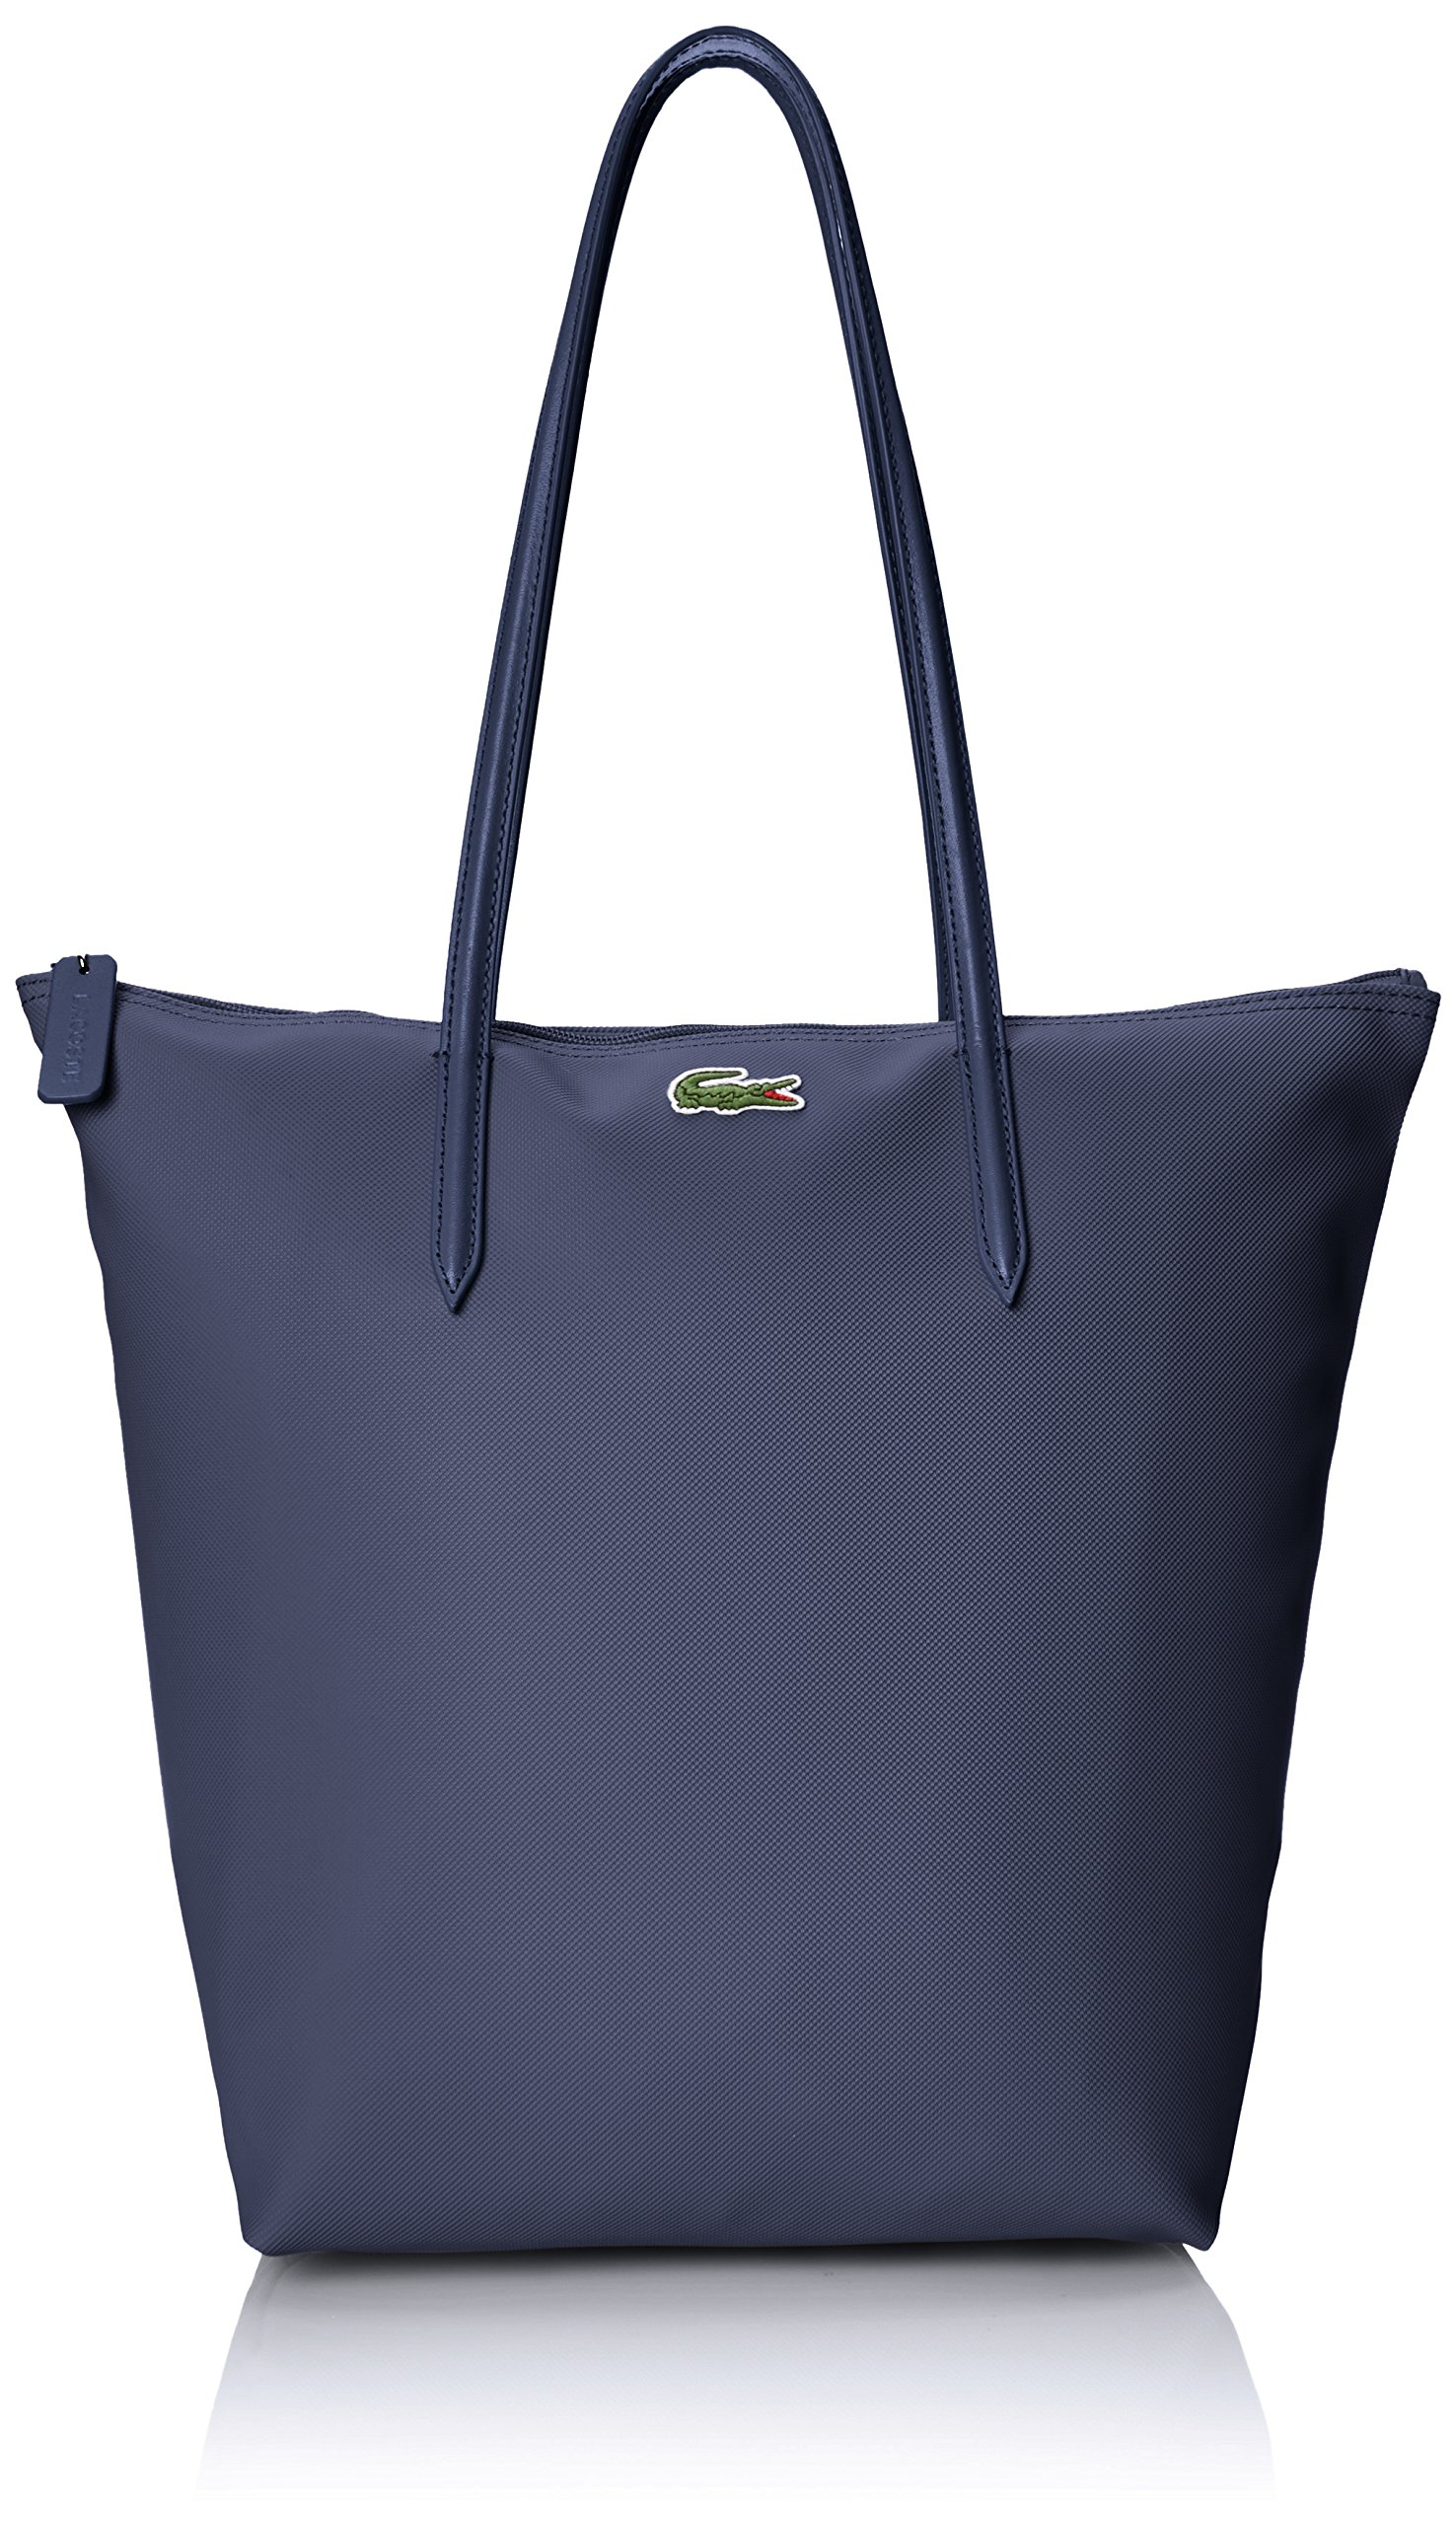 ebc7f9b7f6 Lacoste Vertical Tote Bag For Sale Philippines | Stanford Center for ...